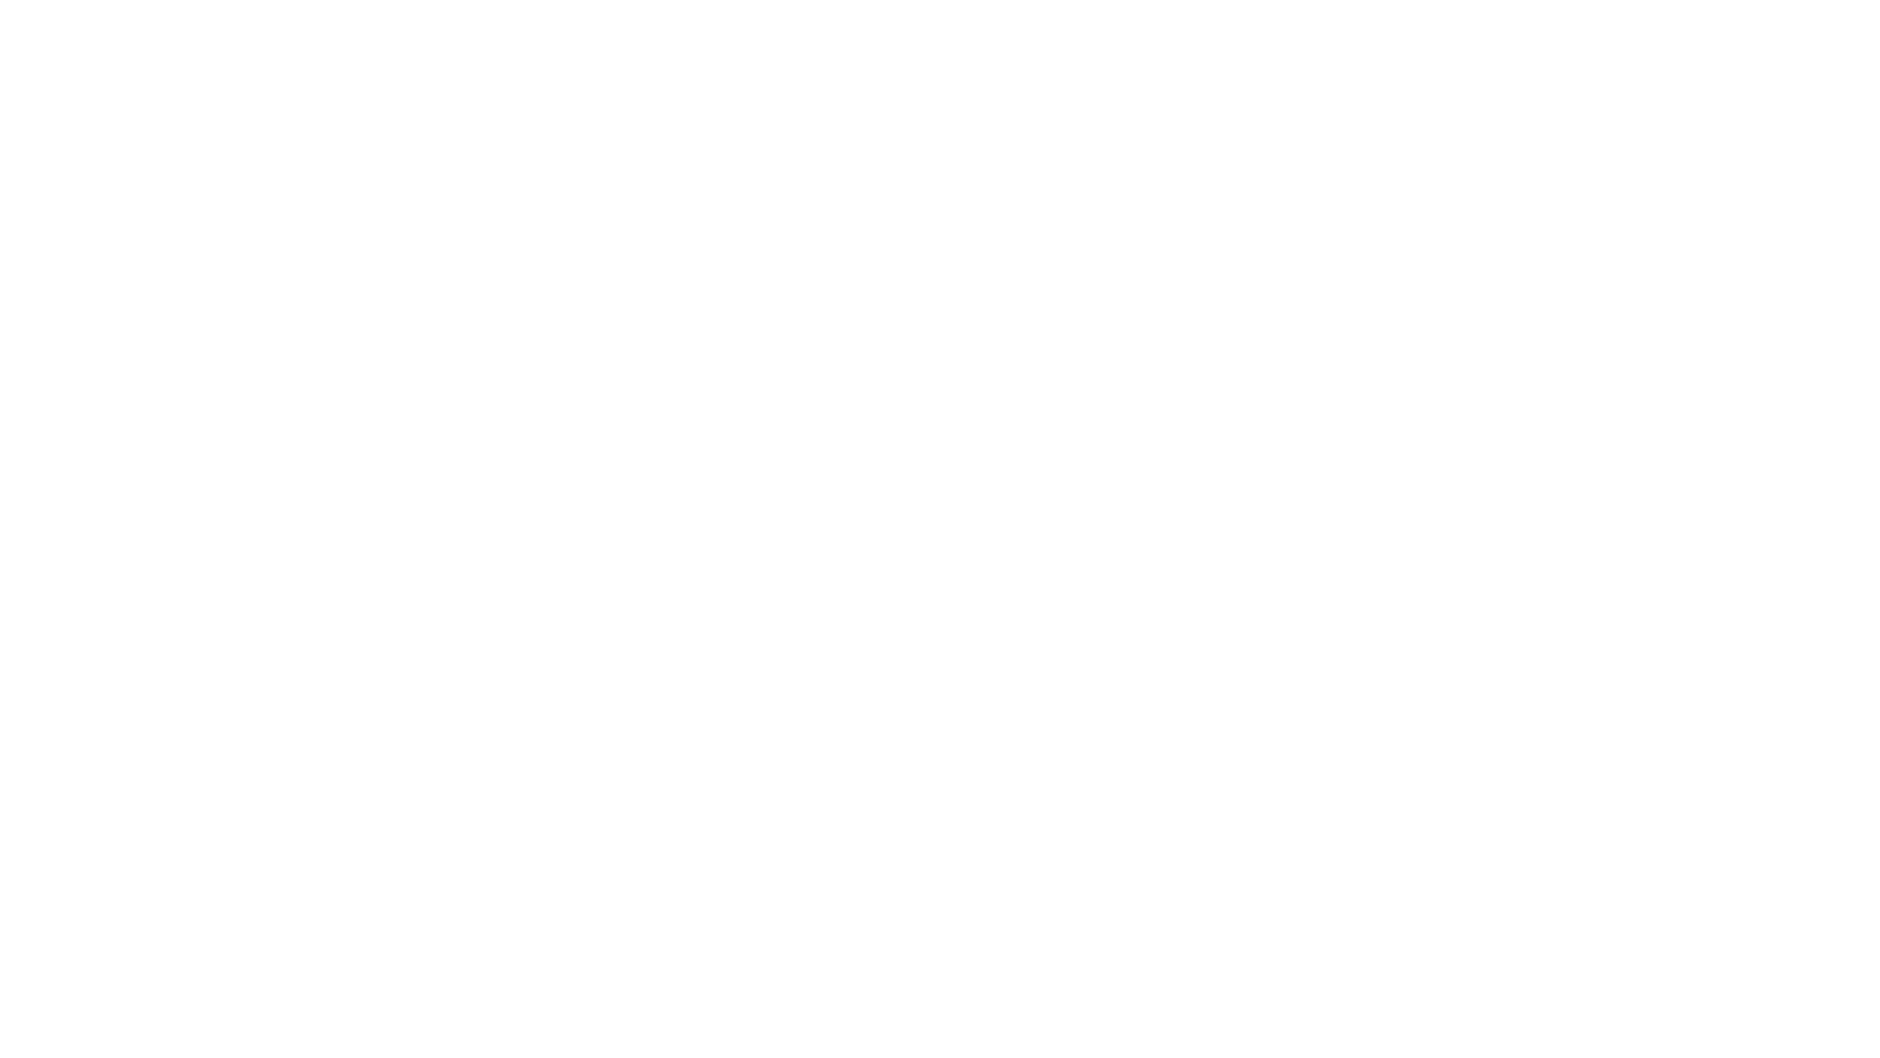 THE SHOP ONLINE #TheWayWeLive